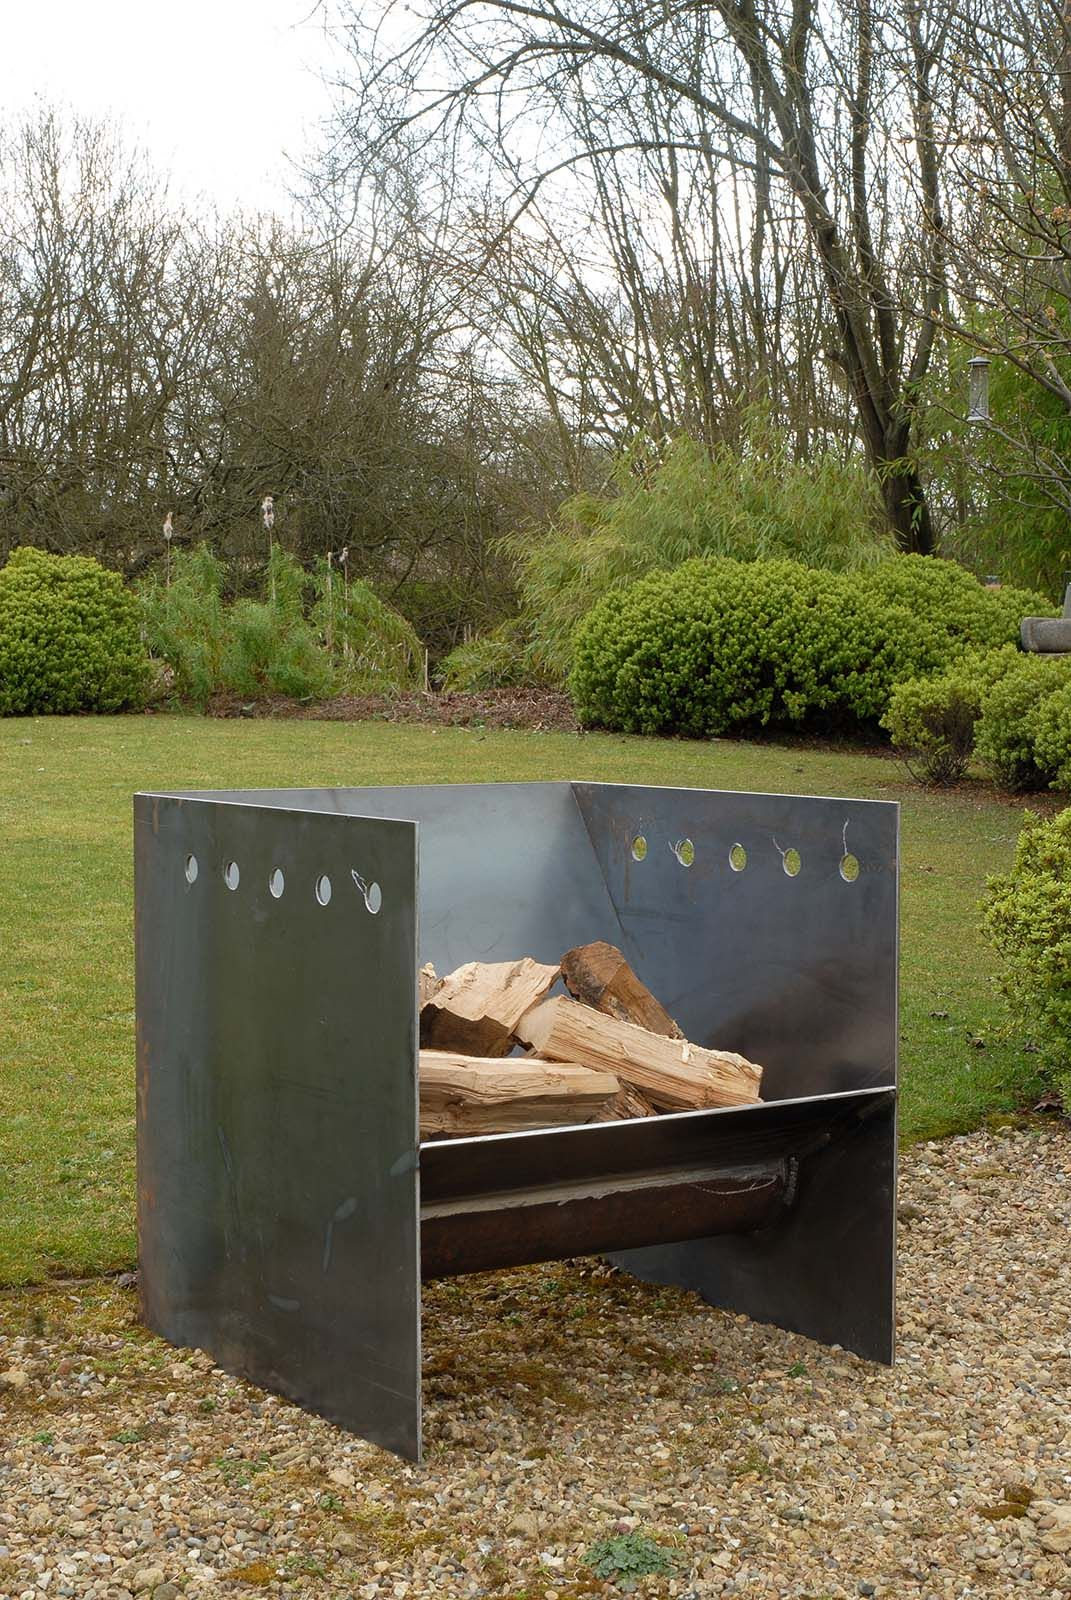 Estufas Exteriores Superchunk Fire Pit From Magmafirepits Durable 5mm Steel